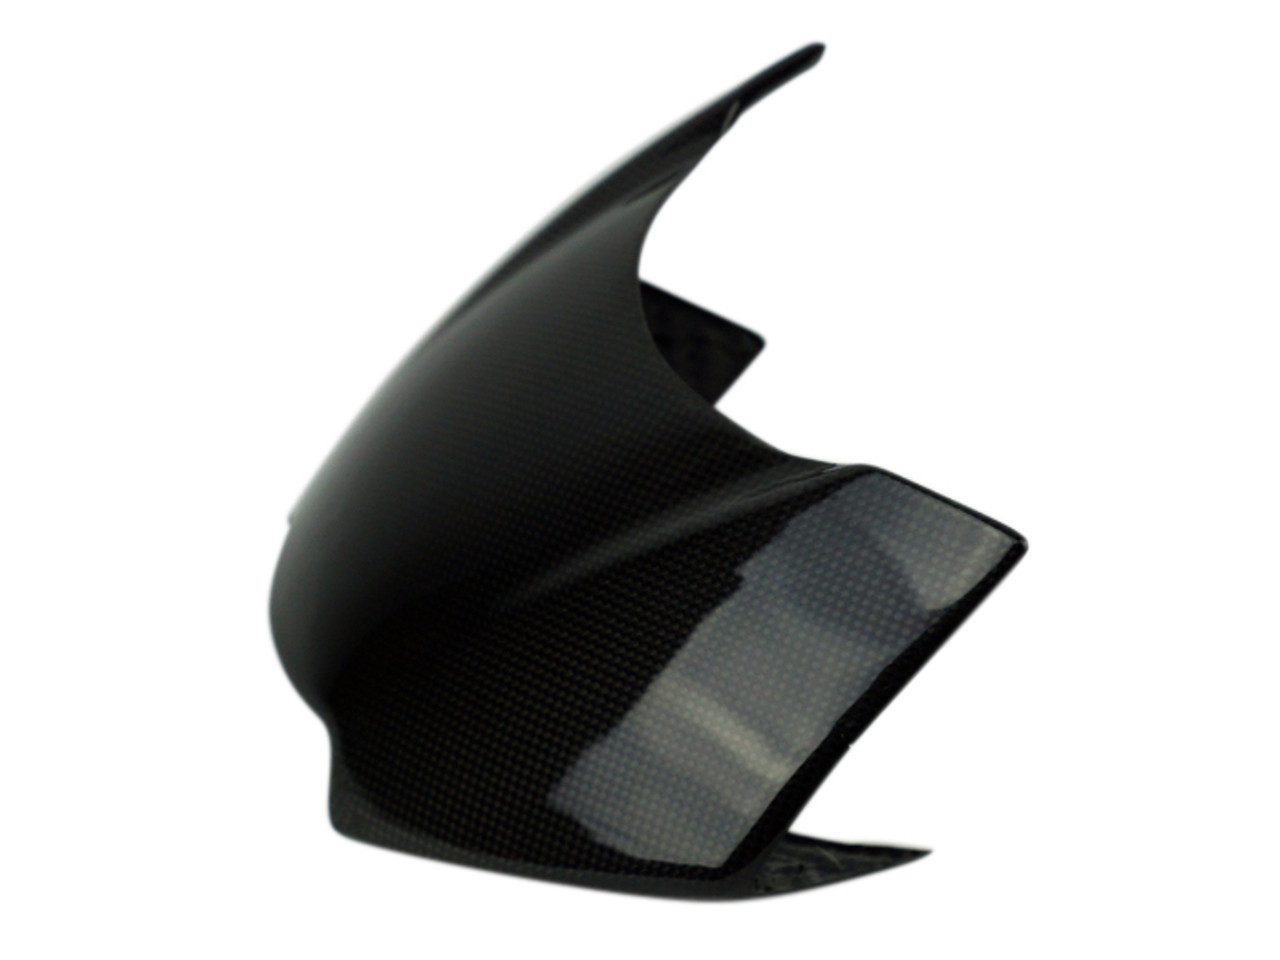 Nose Fairing in Glossy Plain Weave Carbon Fiber for Triumph Speed Triple 1050R 2016+